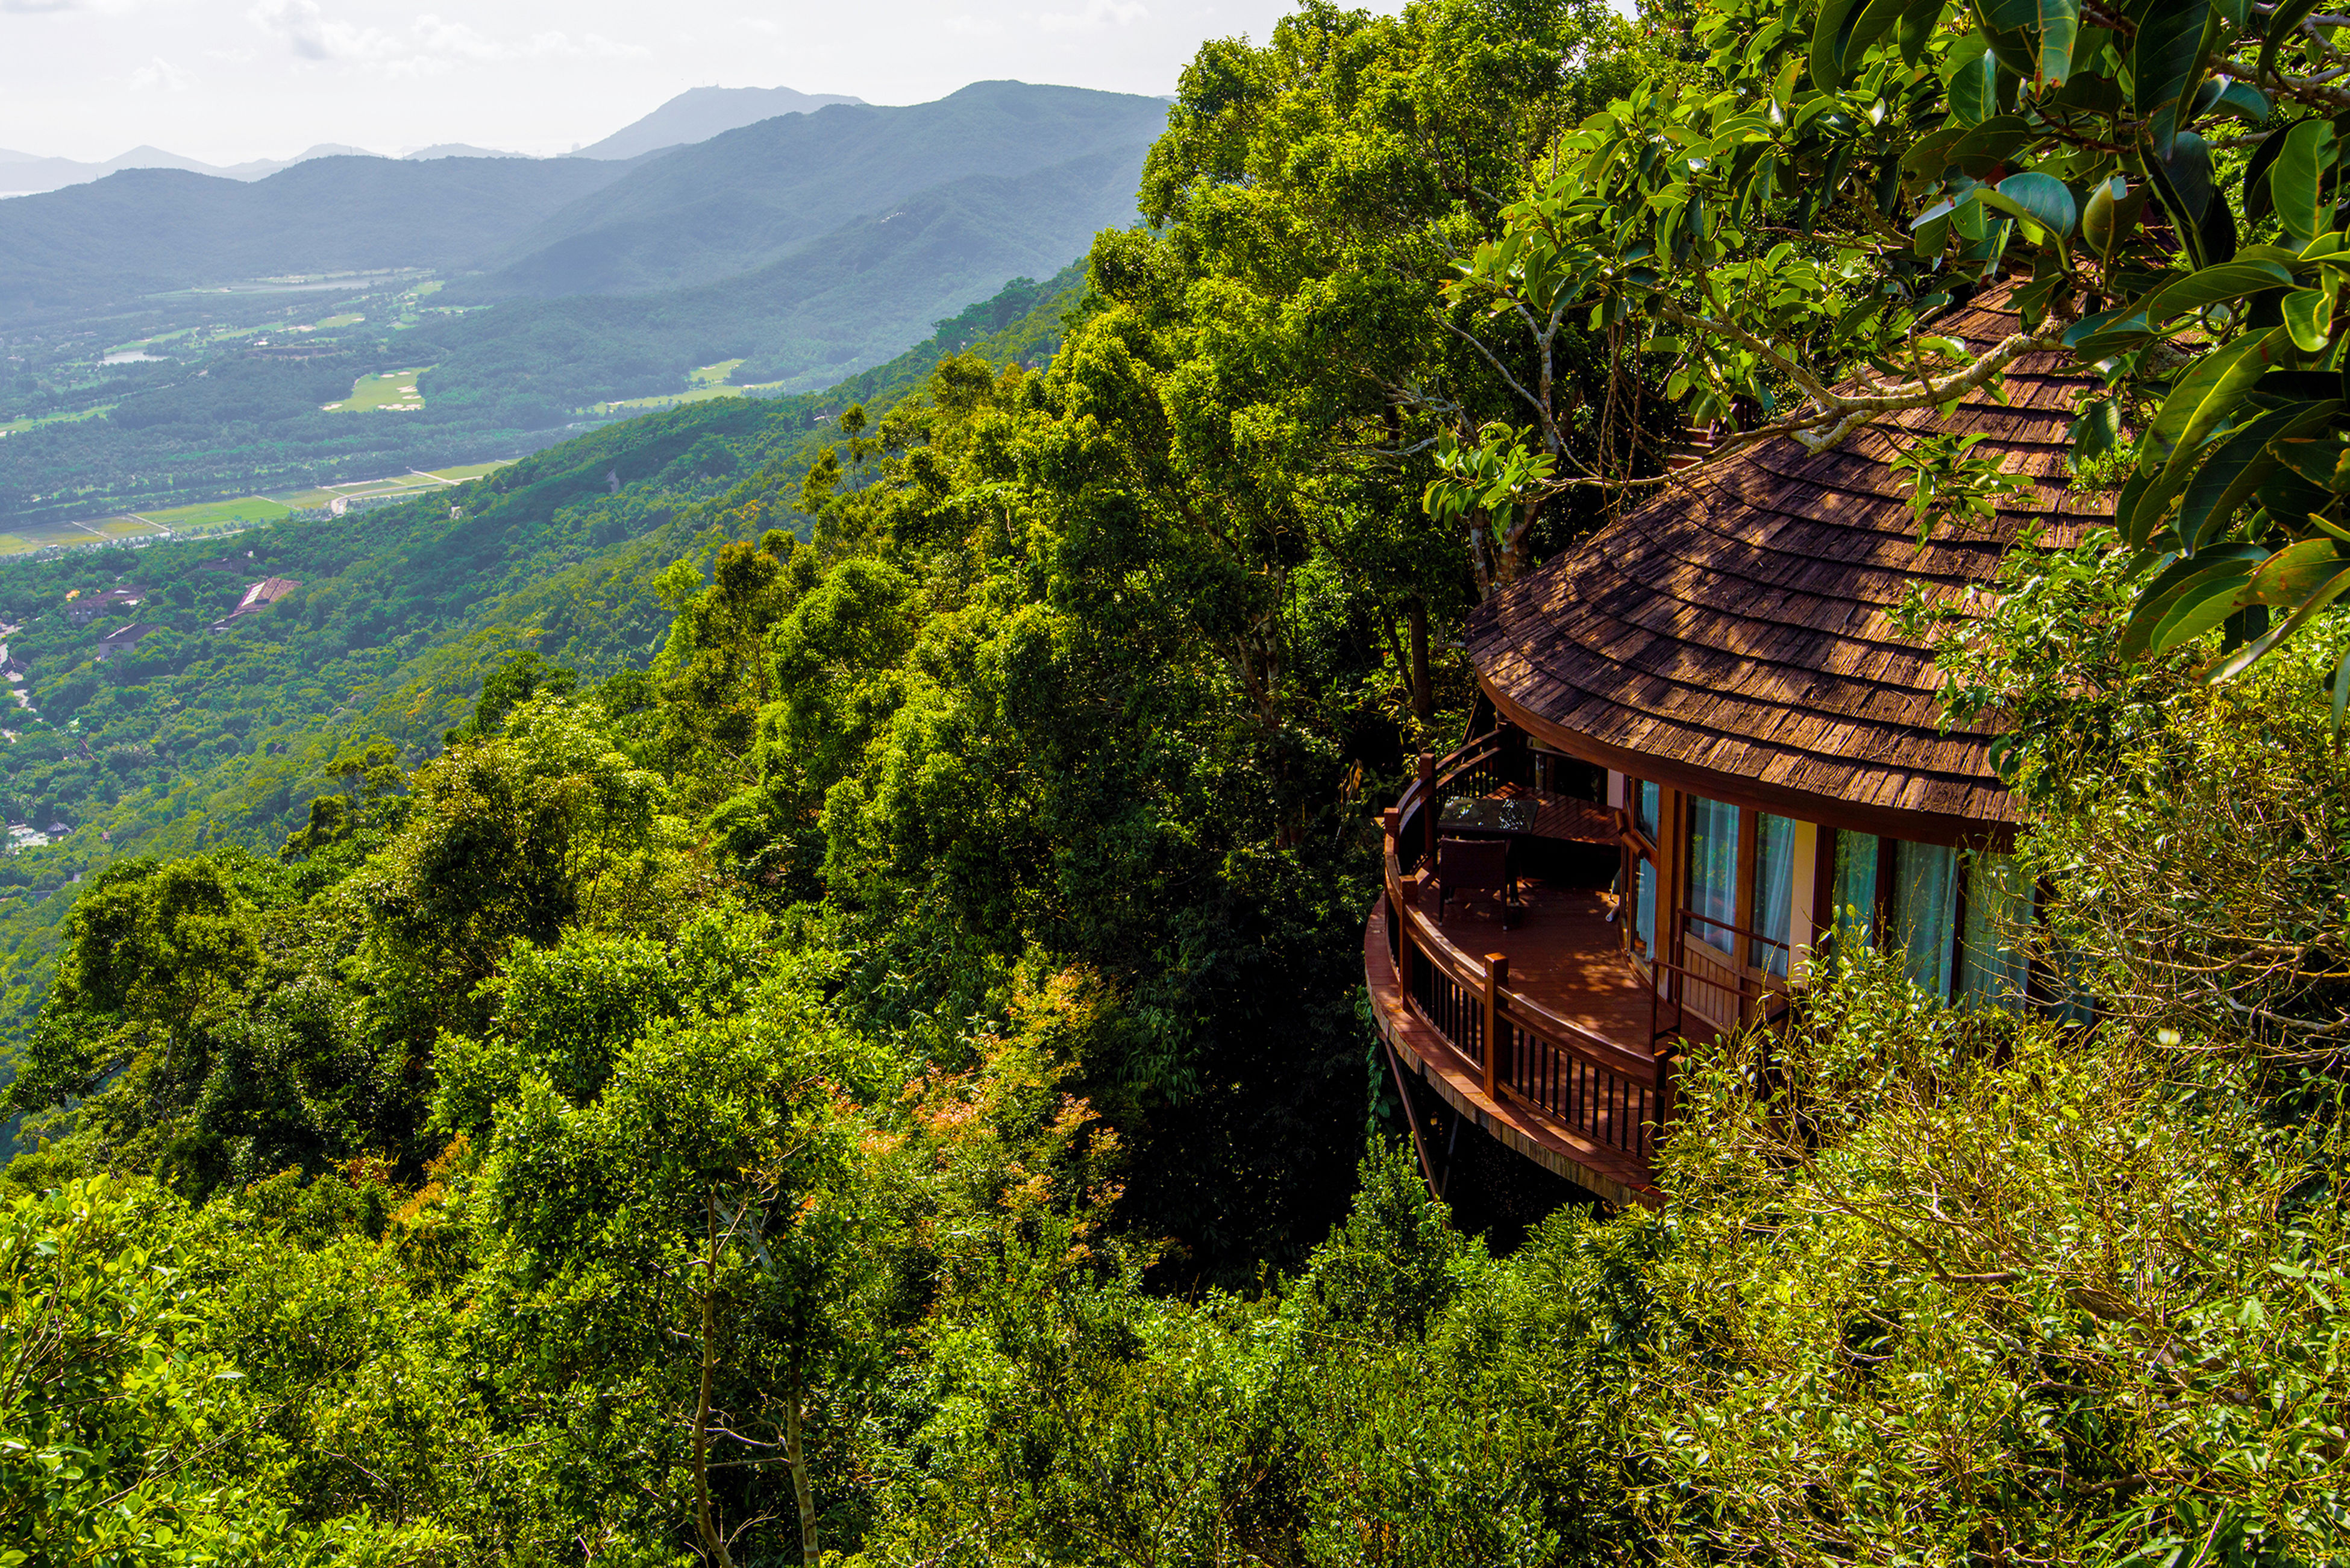 built structure, mountain, architecture, green color, tree, house, building exterior, tranquility, landscape, plant, tranquil scene, growth, nature, scenics, grass, lush foliage, abandoned, hill, beauty in nature, sky